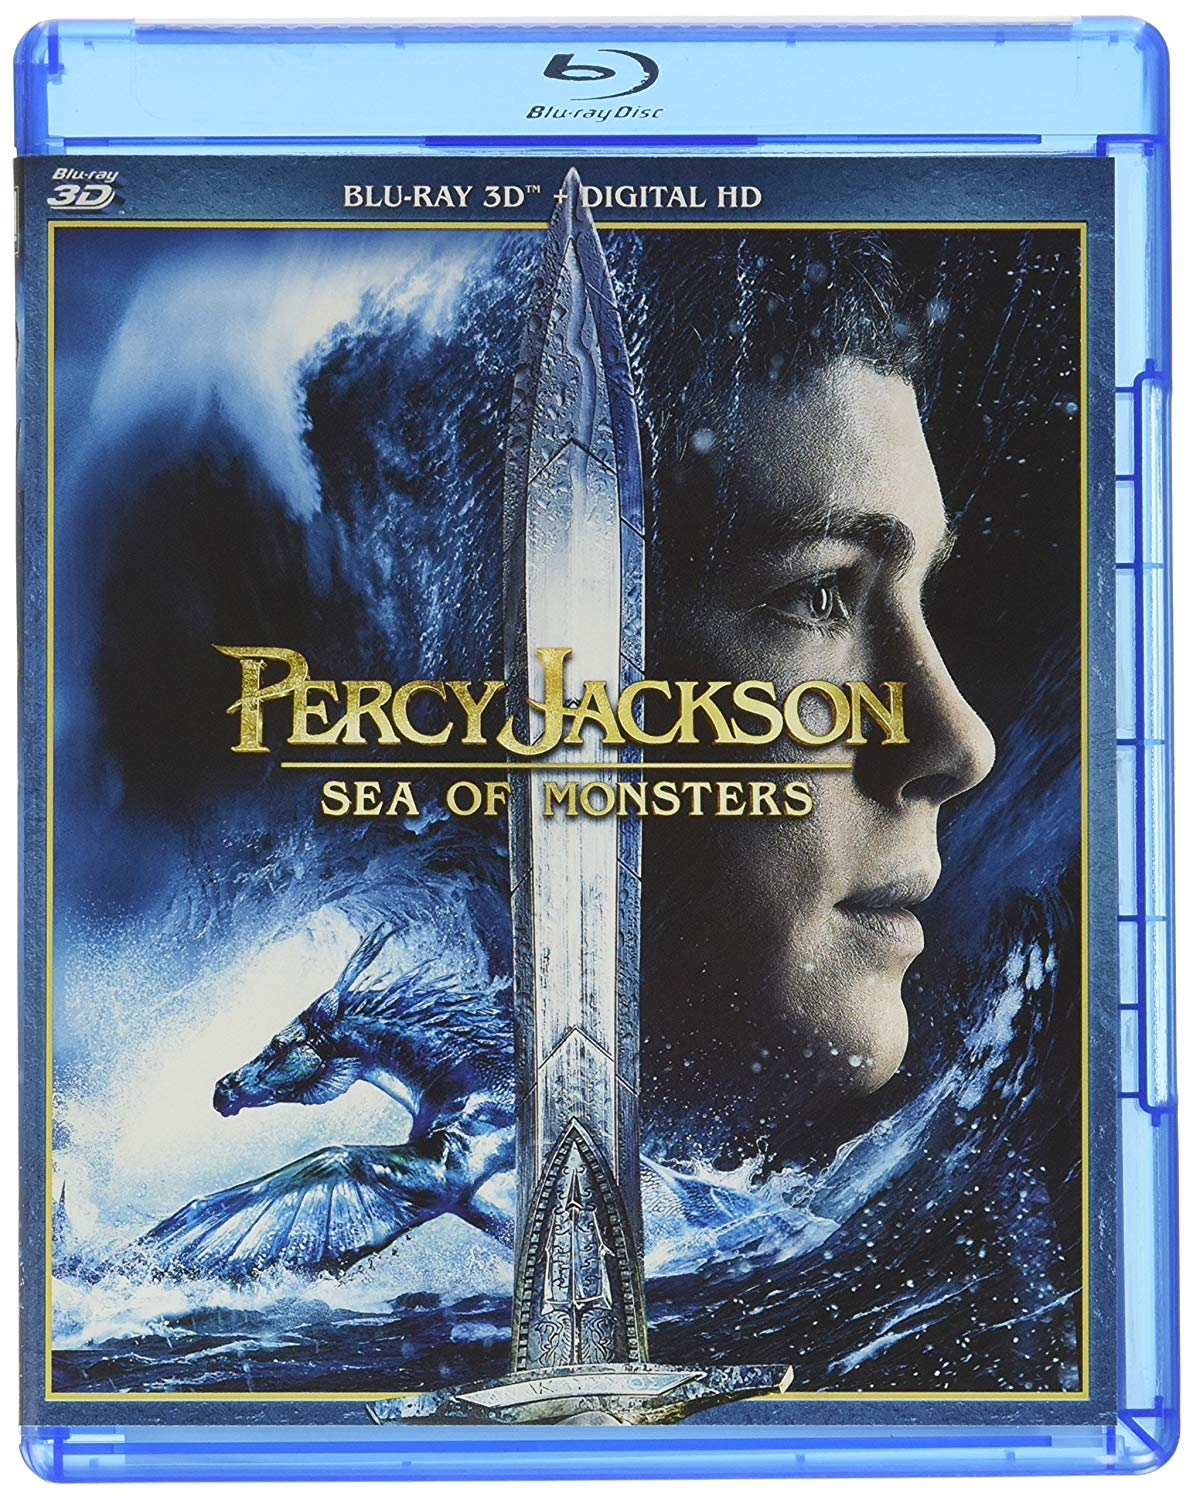 Percy Jackson & The Olympians [Movie] - Percy Jackson: Sea Of Monsters [3D]